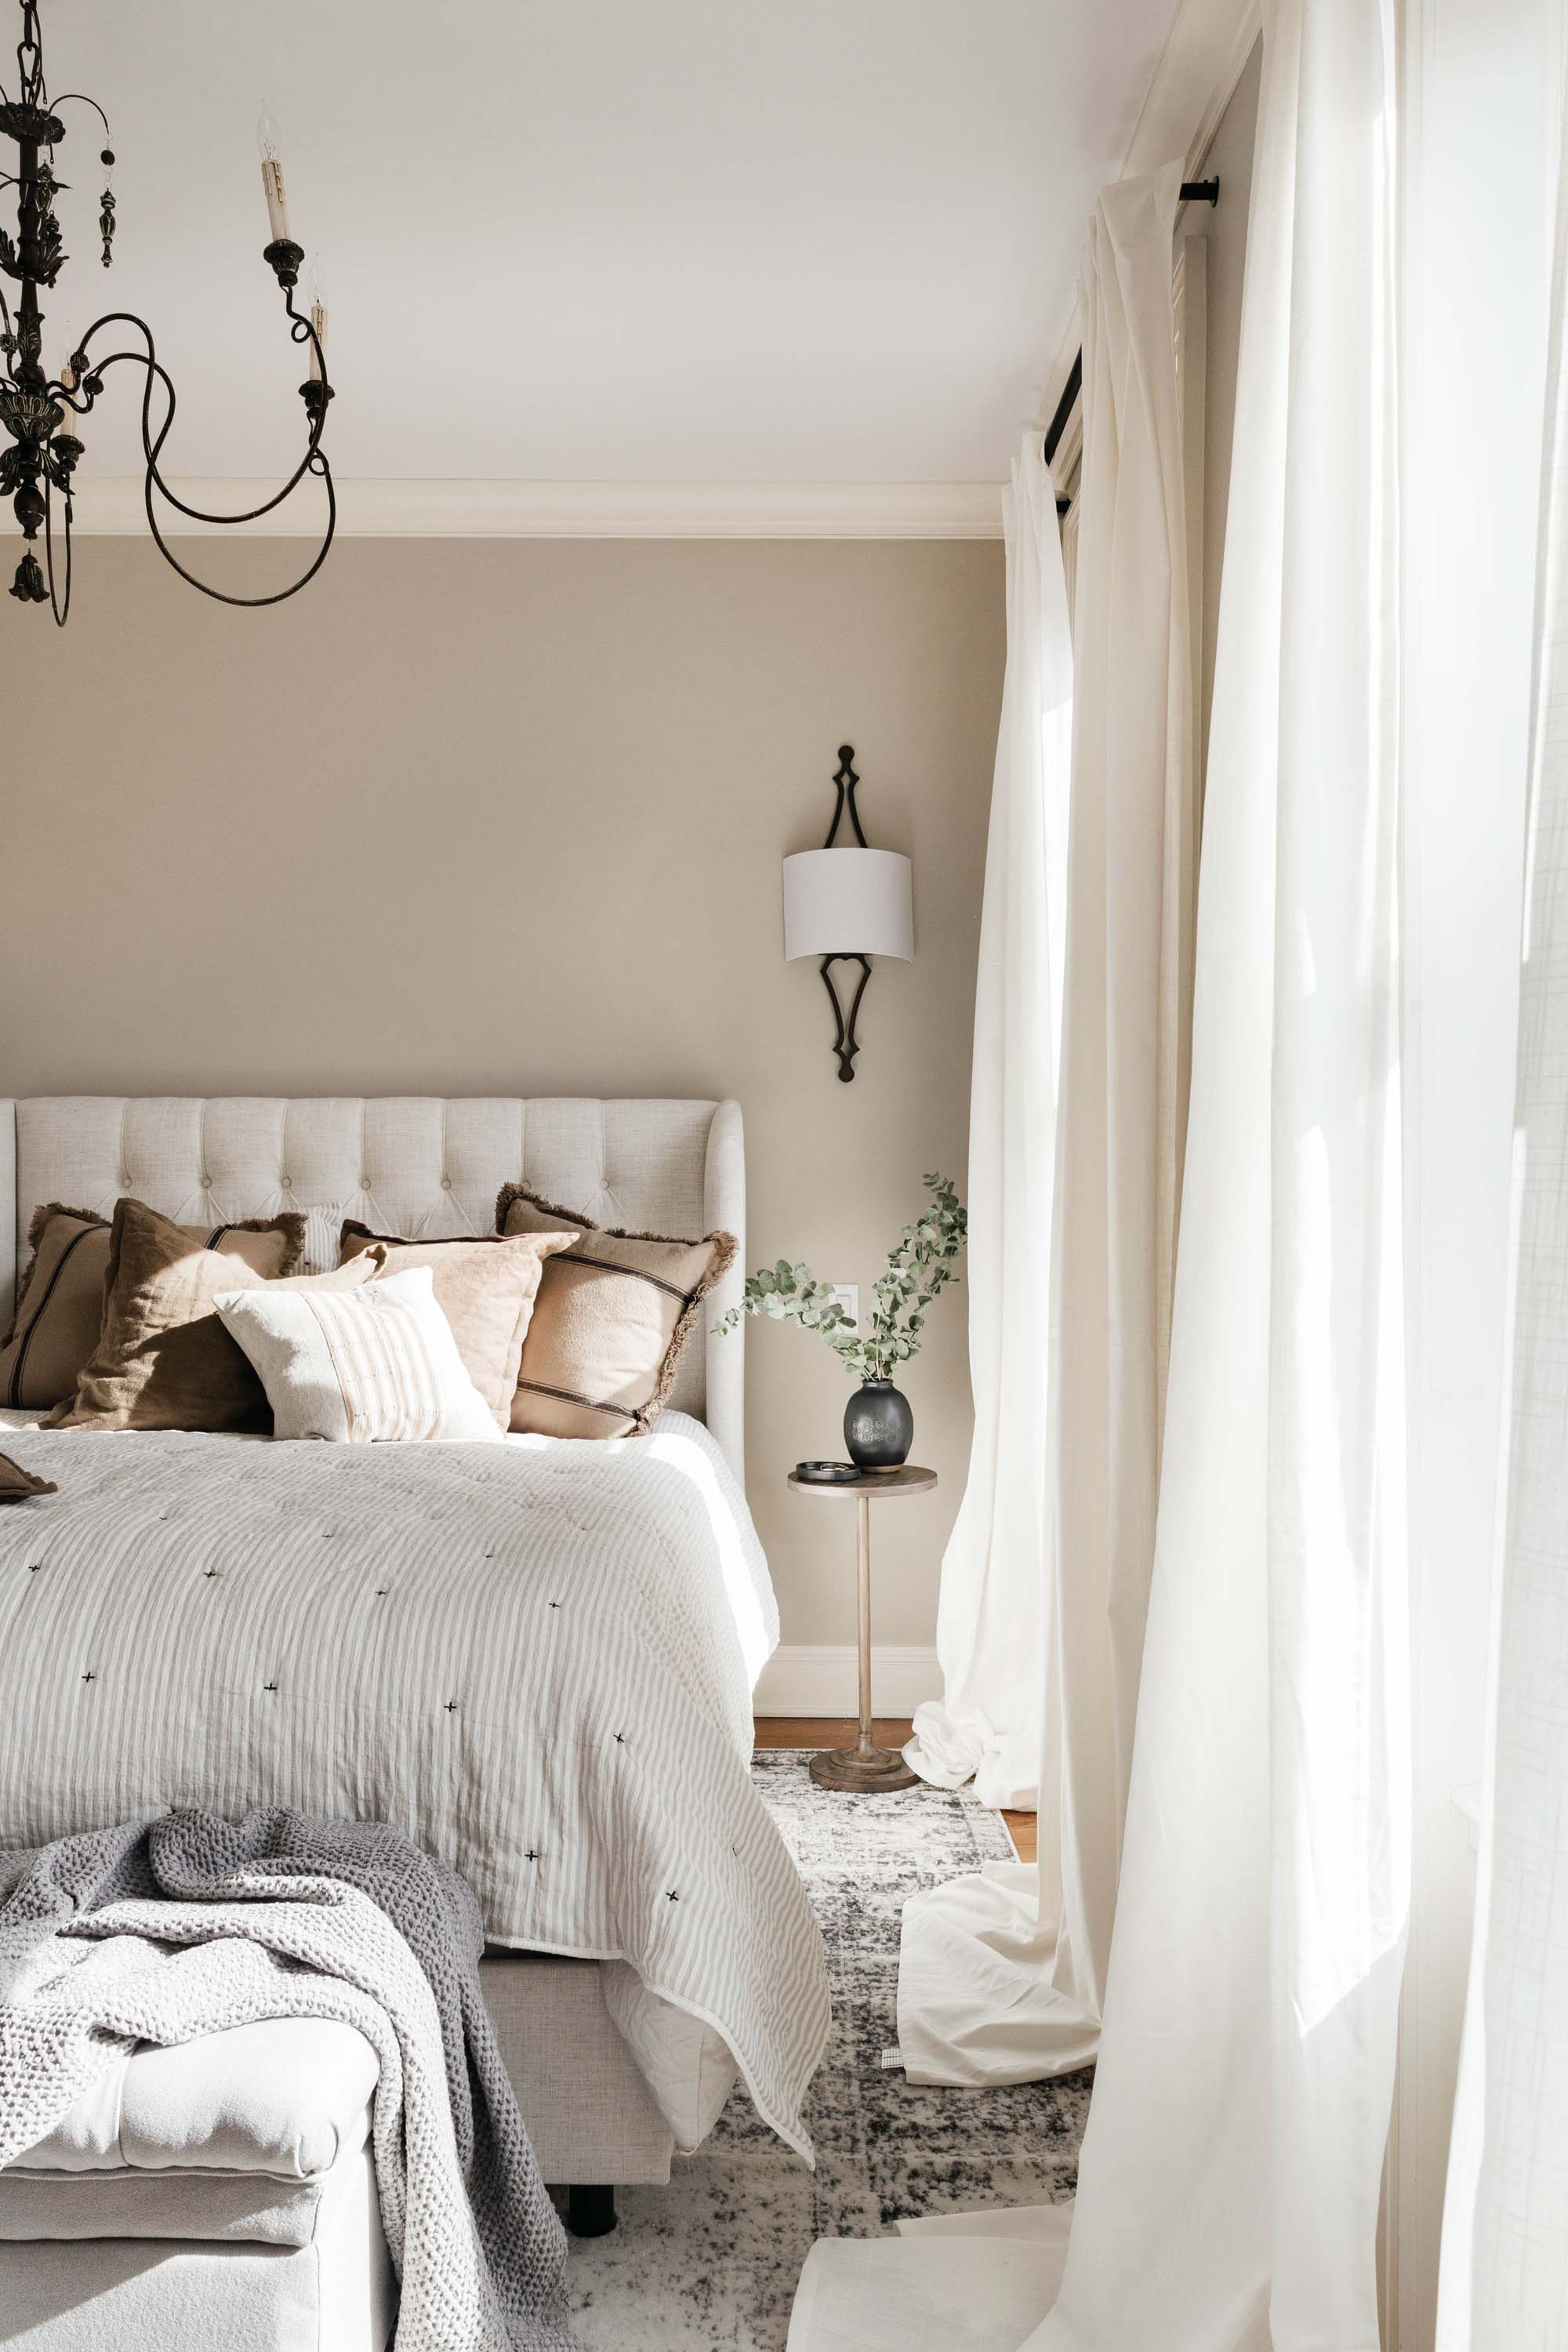 Bedroom with light window drapes